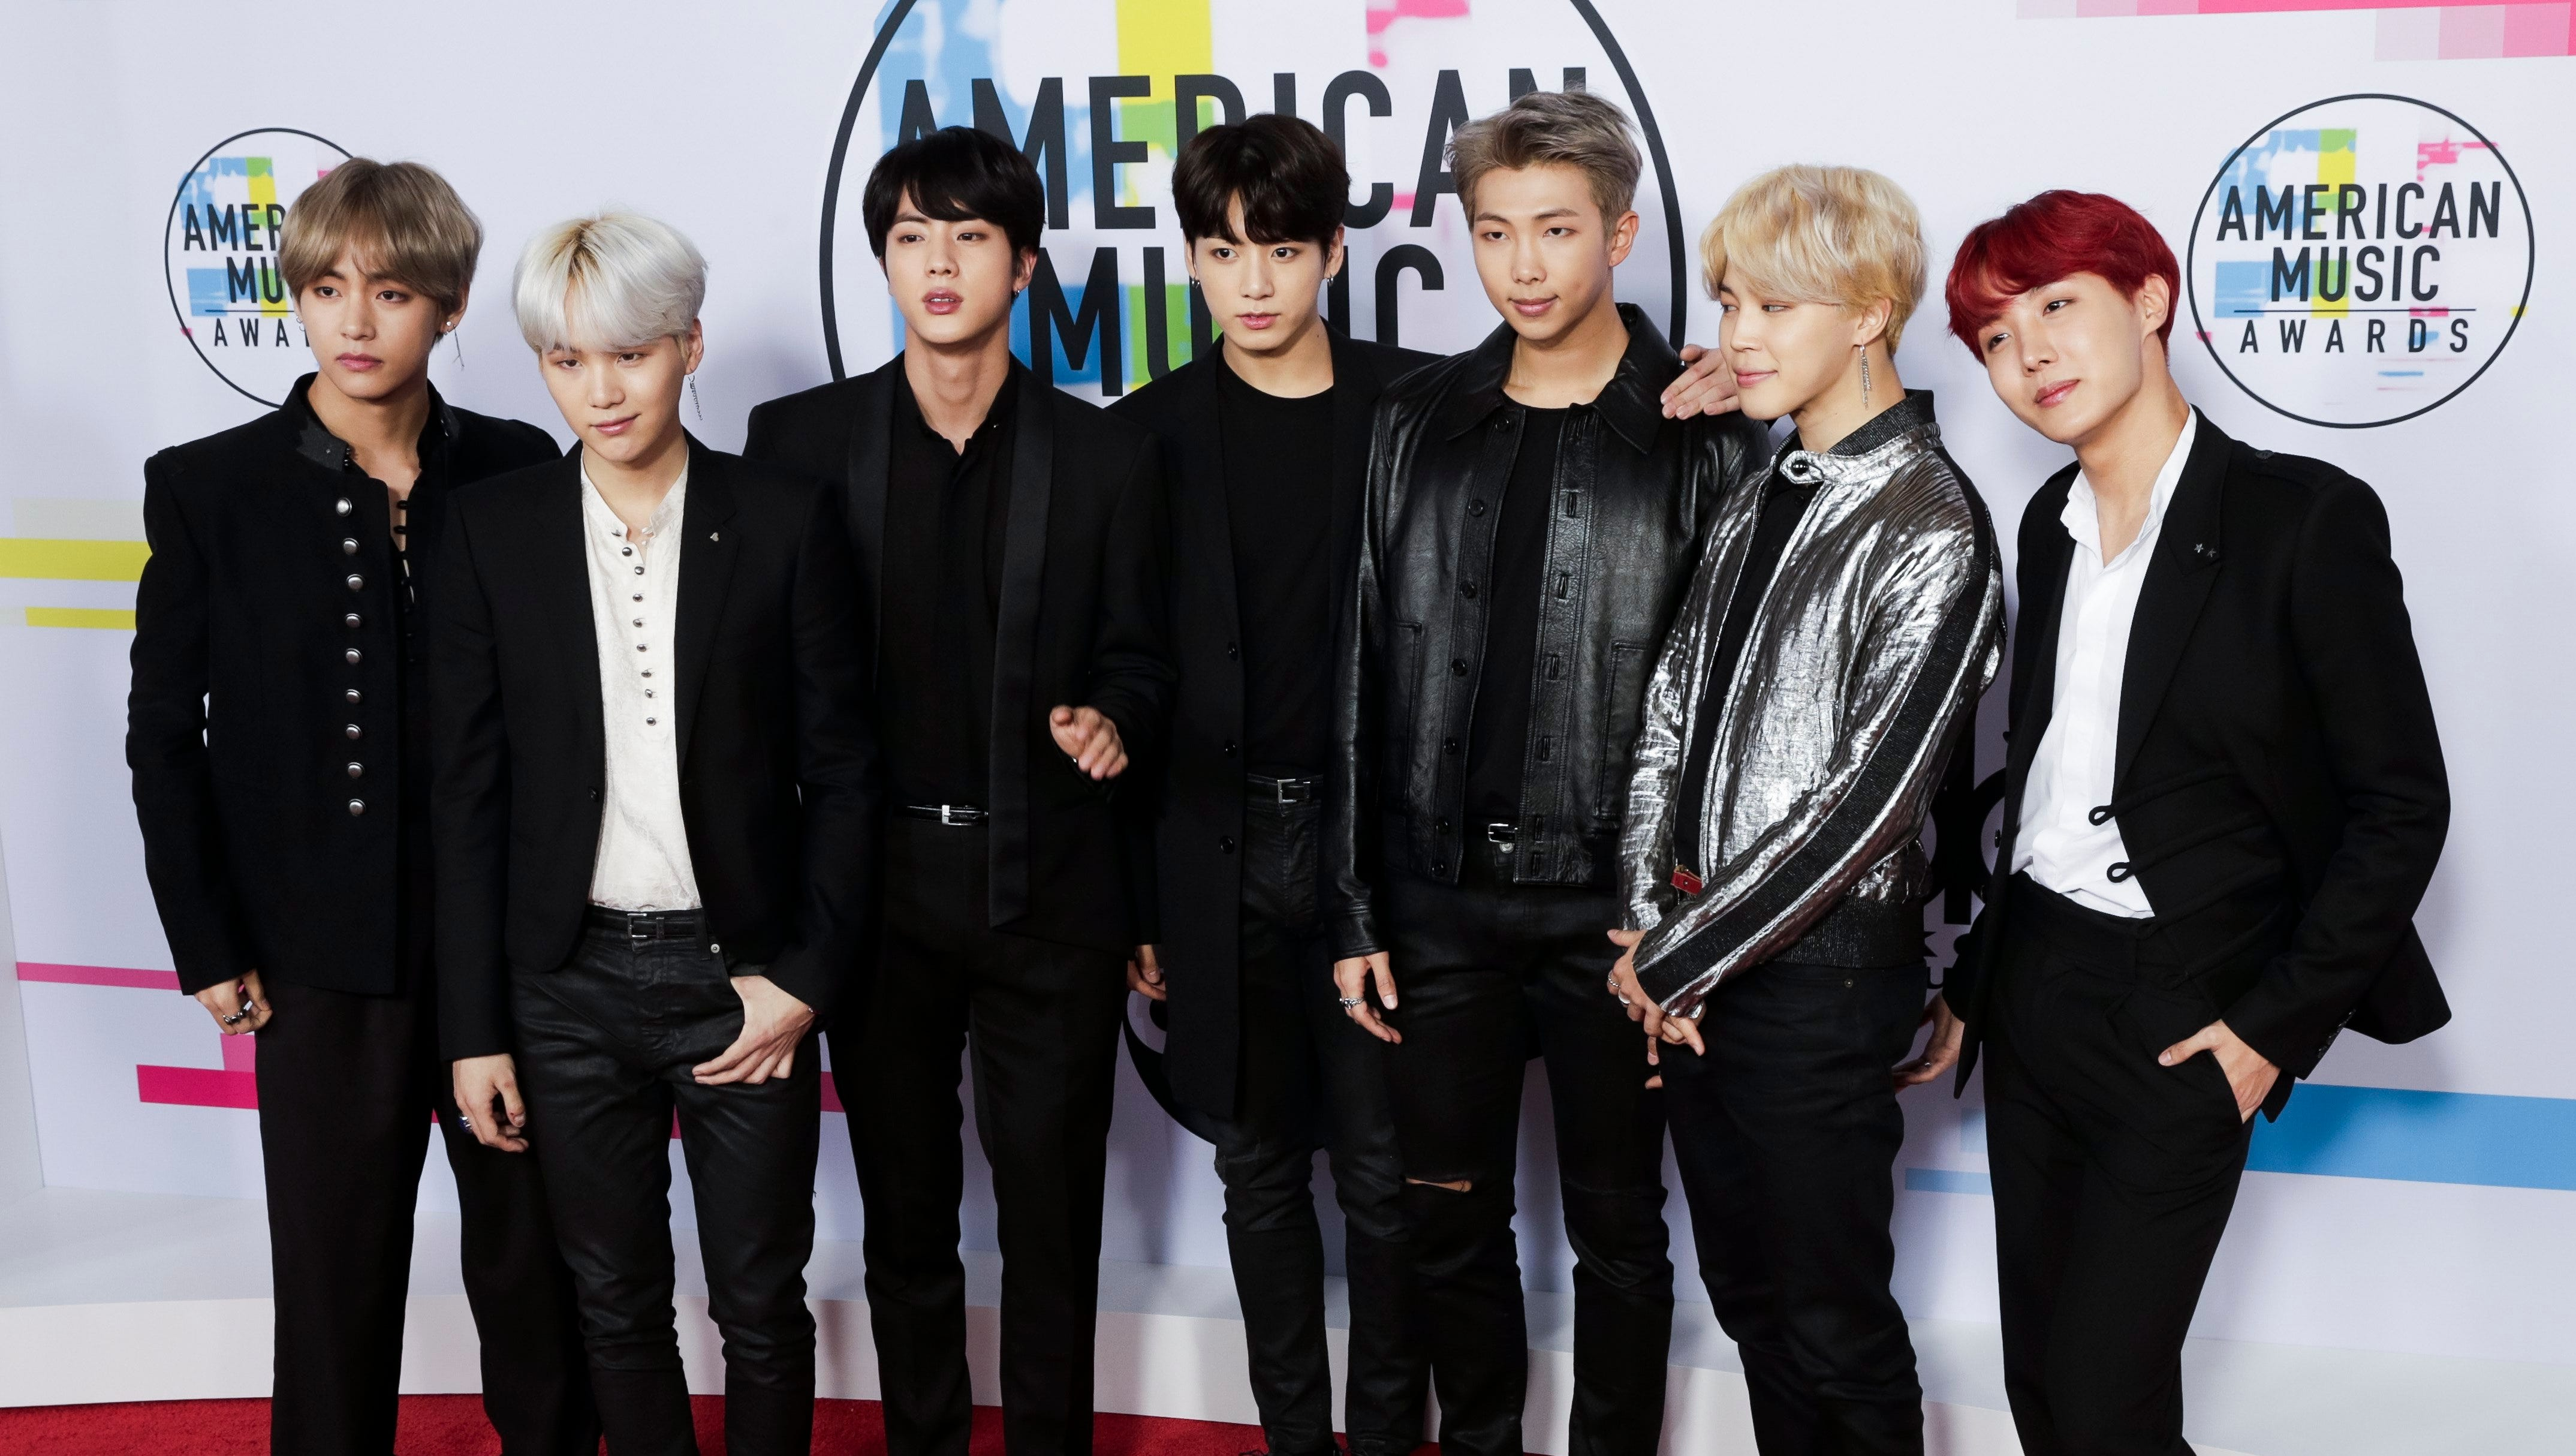 Who Are K Pop Band Bts The Most Tweeted About Celebrities This Year